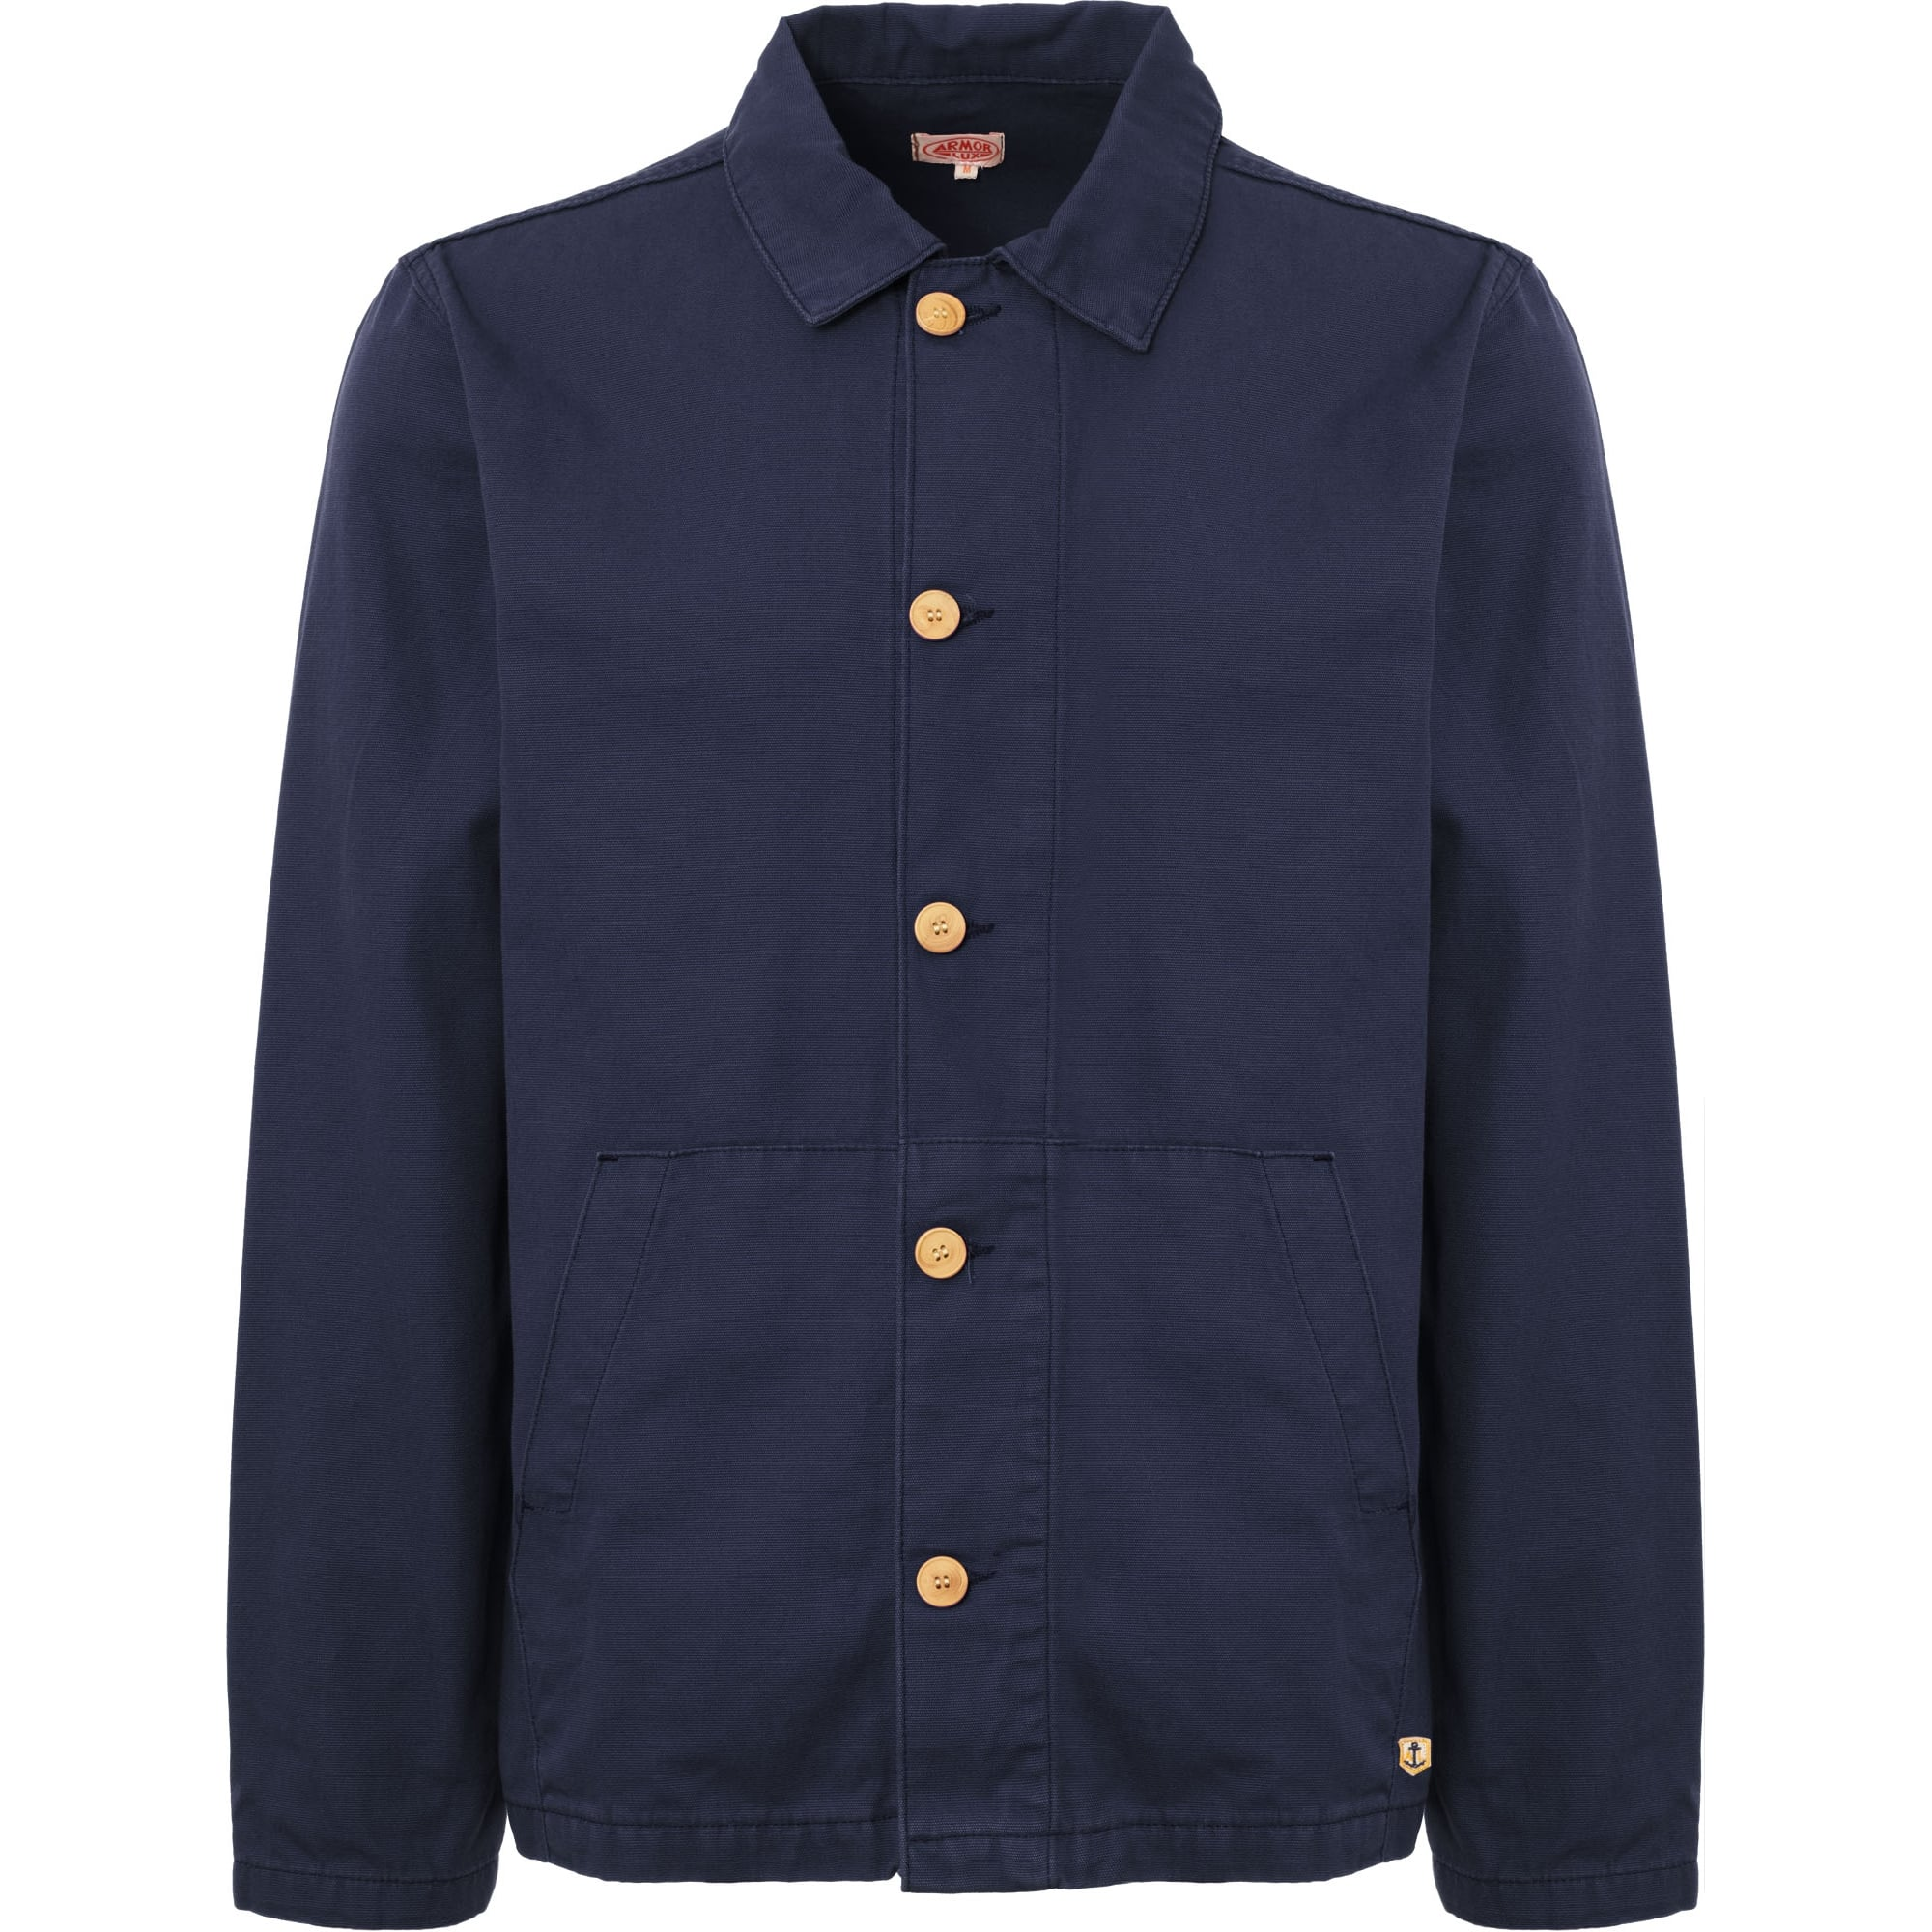 c1e015443a1 Armor Lux Blue Heritage Fisherman s Jacket 72932